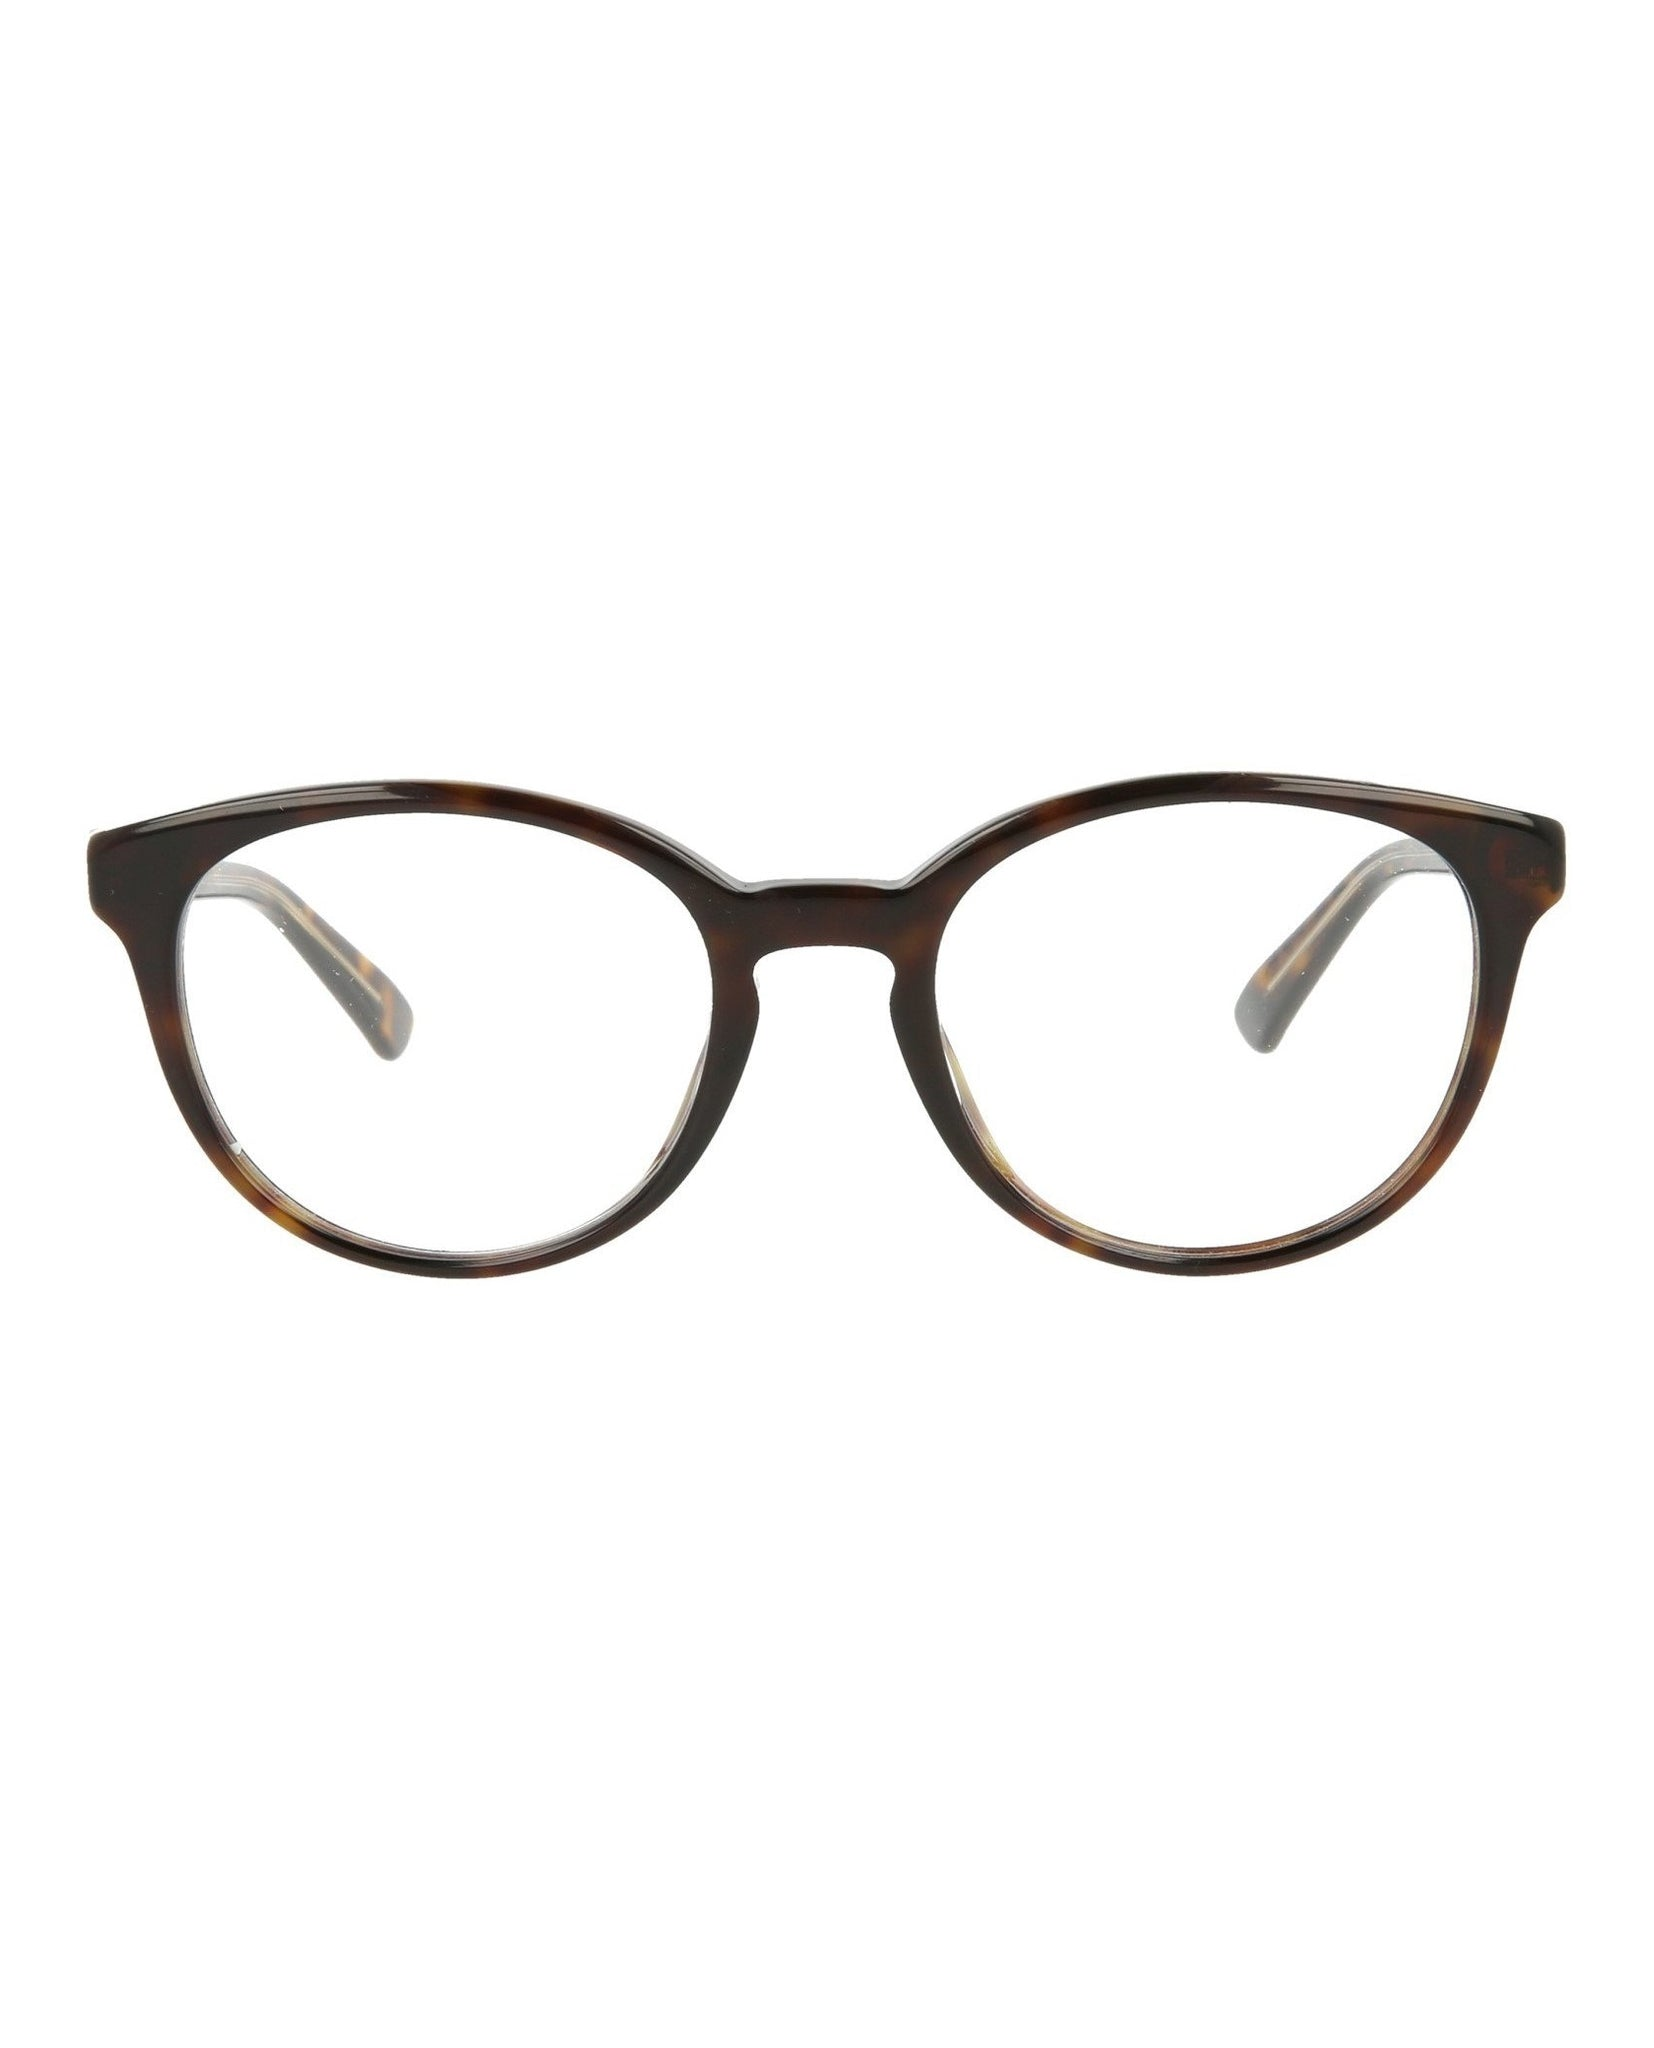 Gucci Round/Oval Optical Frames